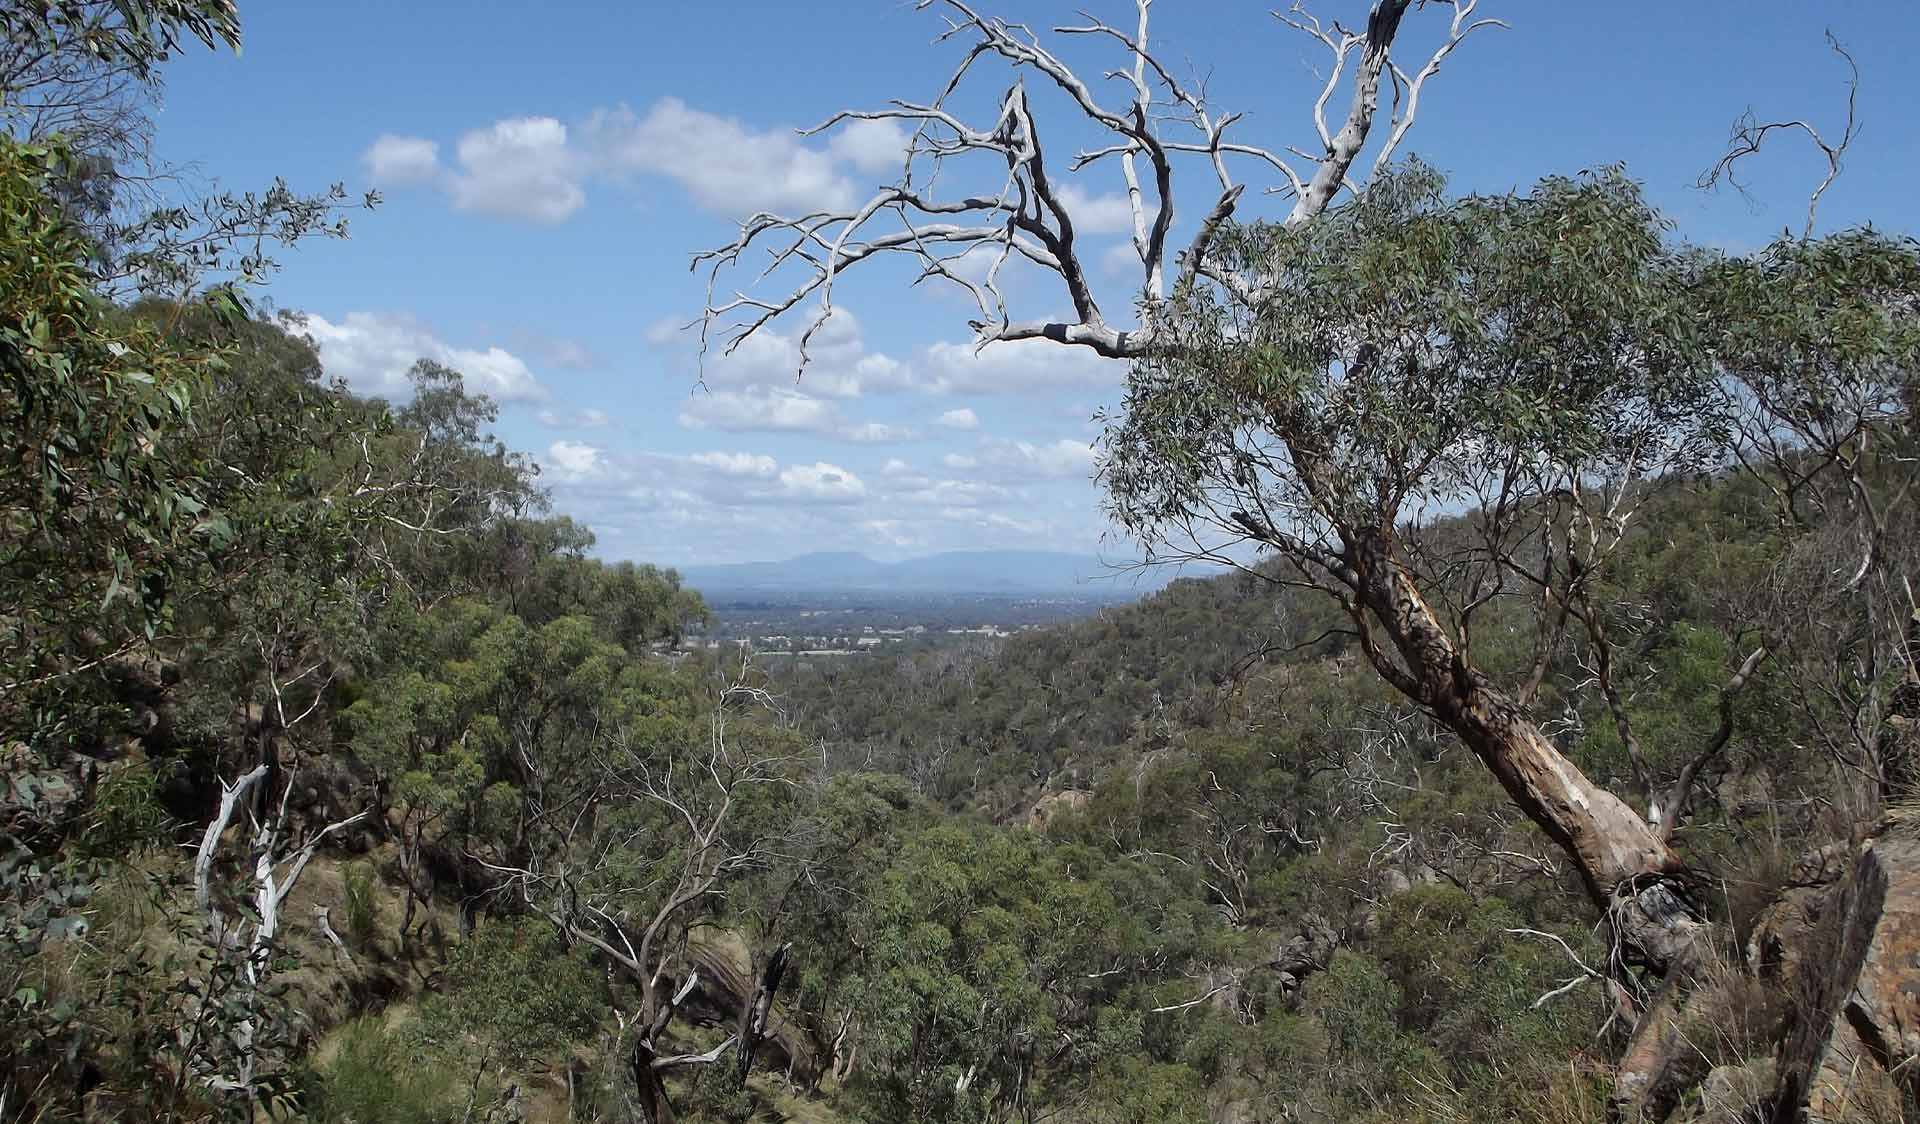 Mountain views to the east of the Warby-Ovens National Park